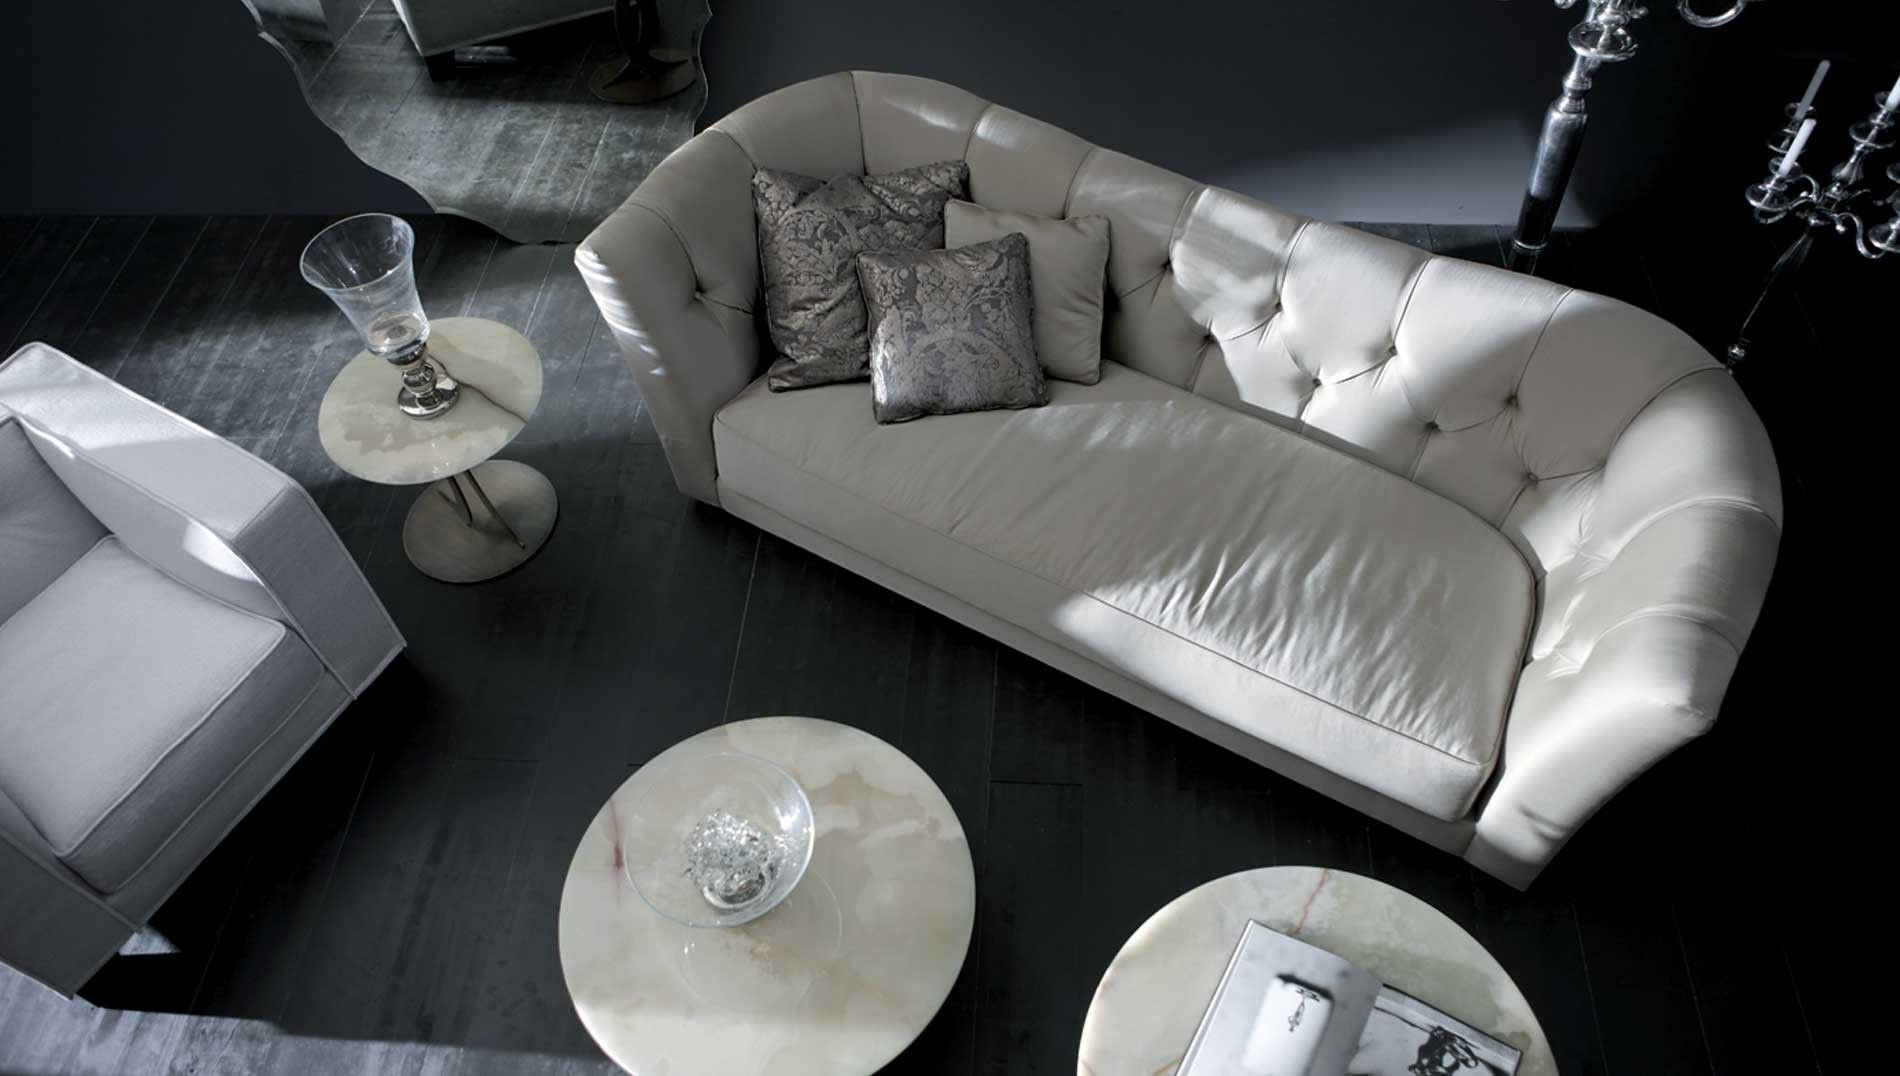 Buy Opera Contemporary Butterfly 3 Seater Sofa Online At Luxdeco The Utterly Inviting Butterfly 3 Seater Sofa Is Chic Modern Sofa Set Luxury Sofa Italian Sofa